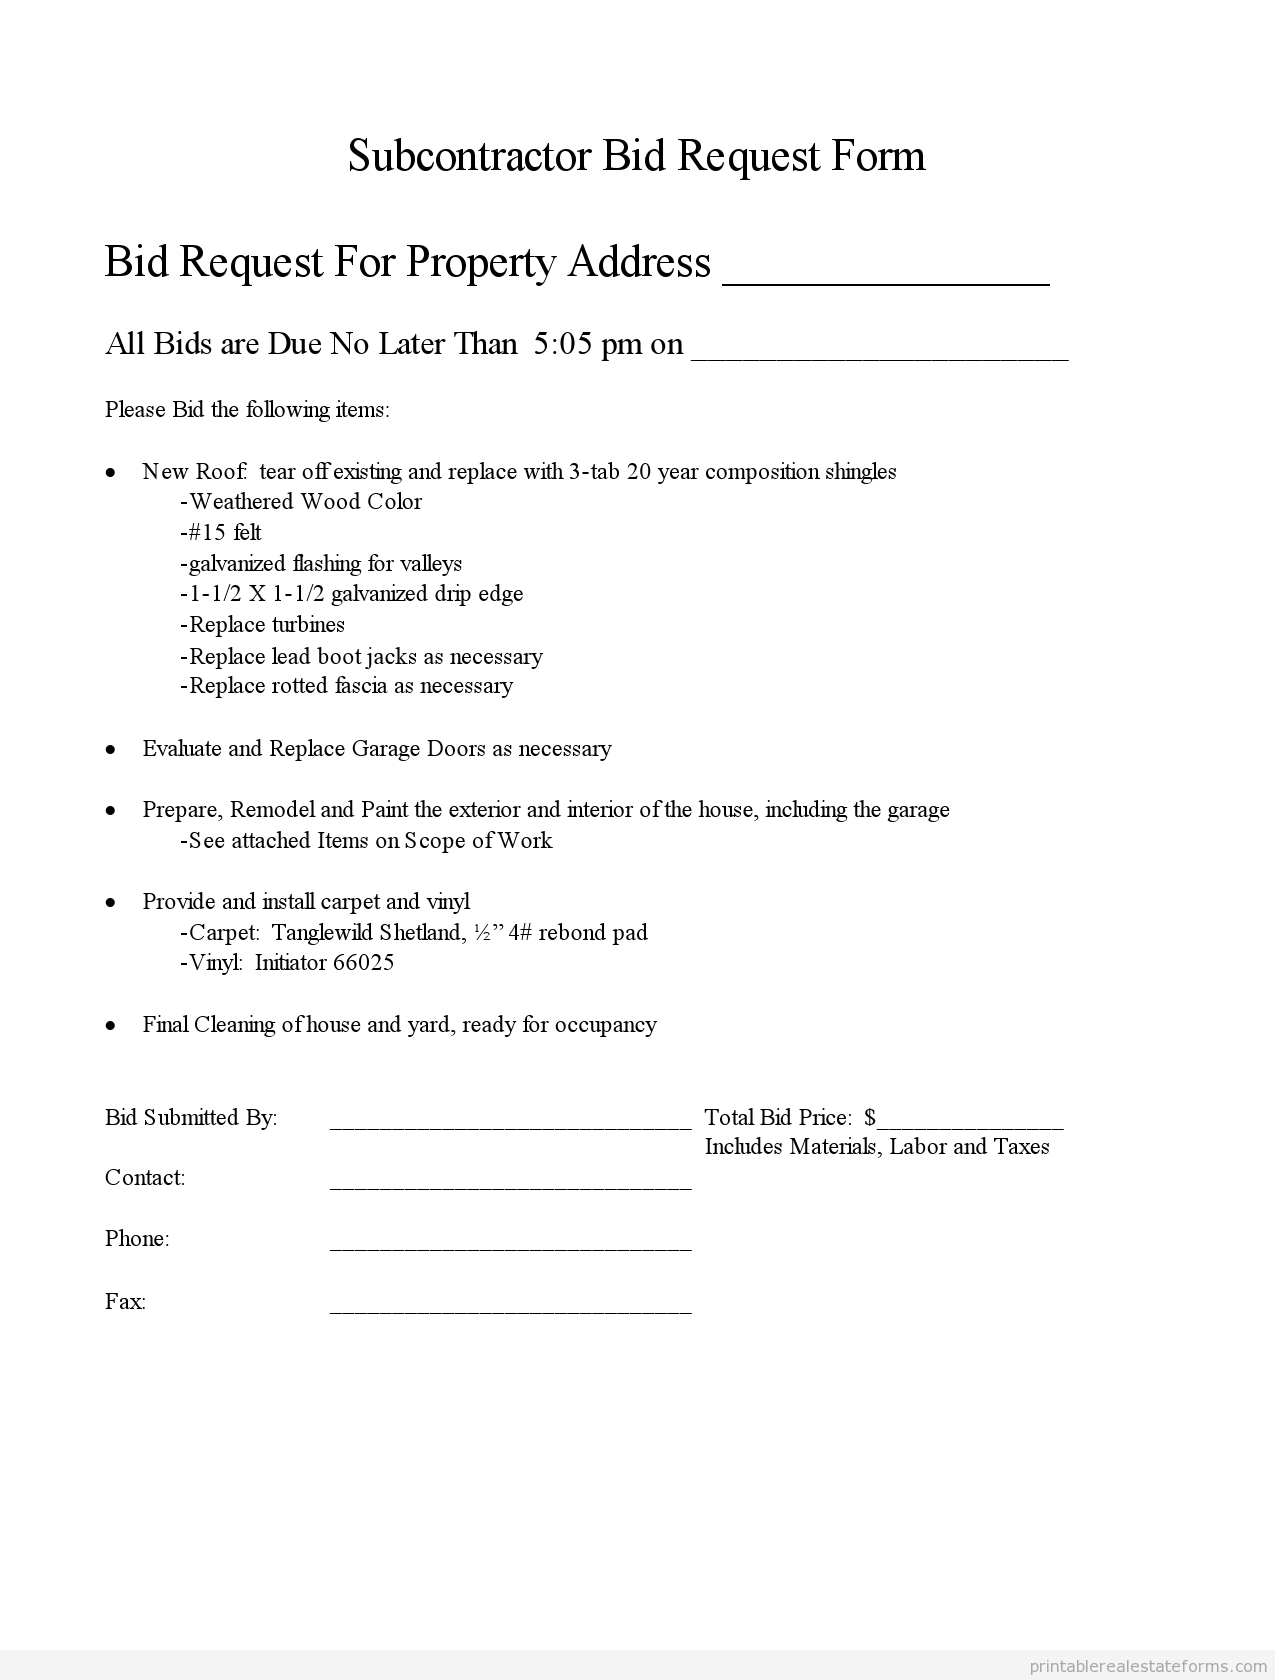 Subcontractor Resume Sample Printable Subcontractor Bid Request Form And Standardized